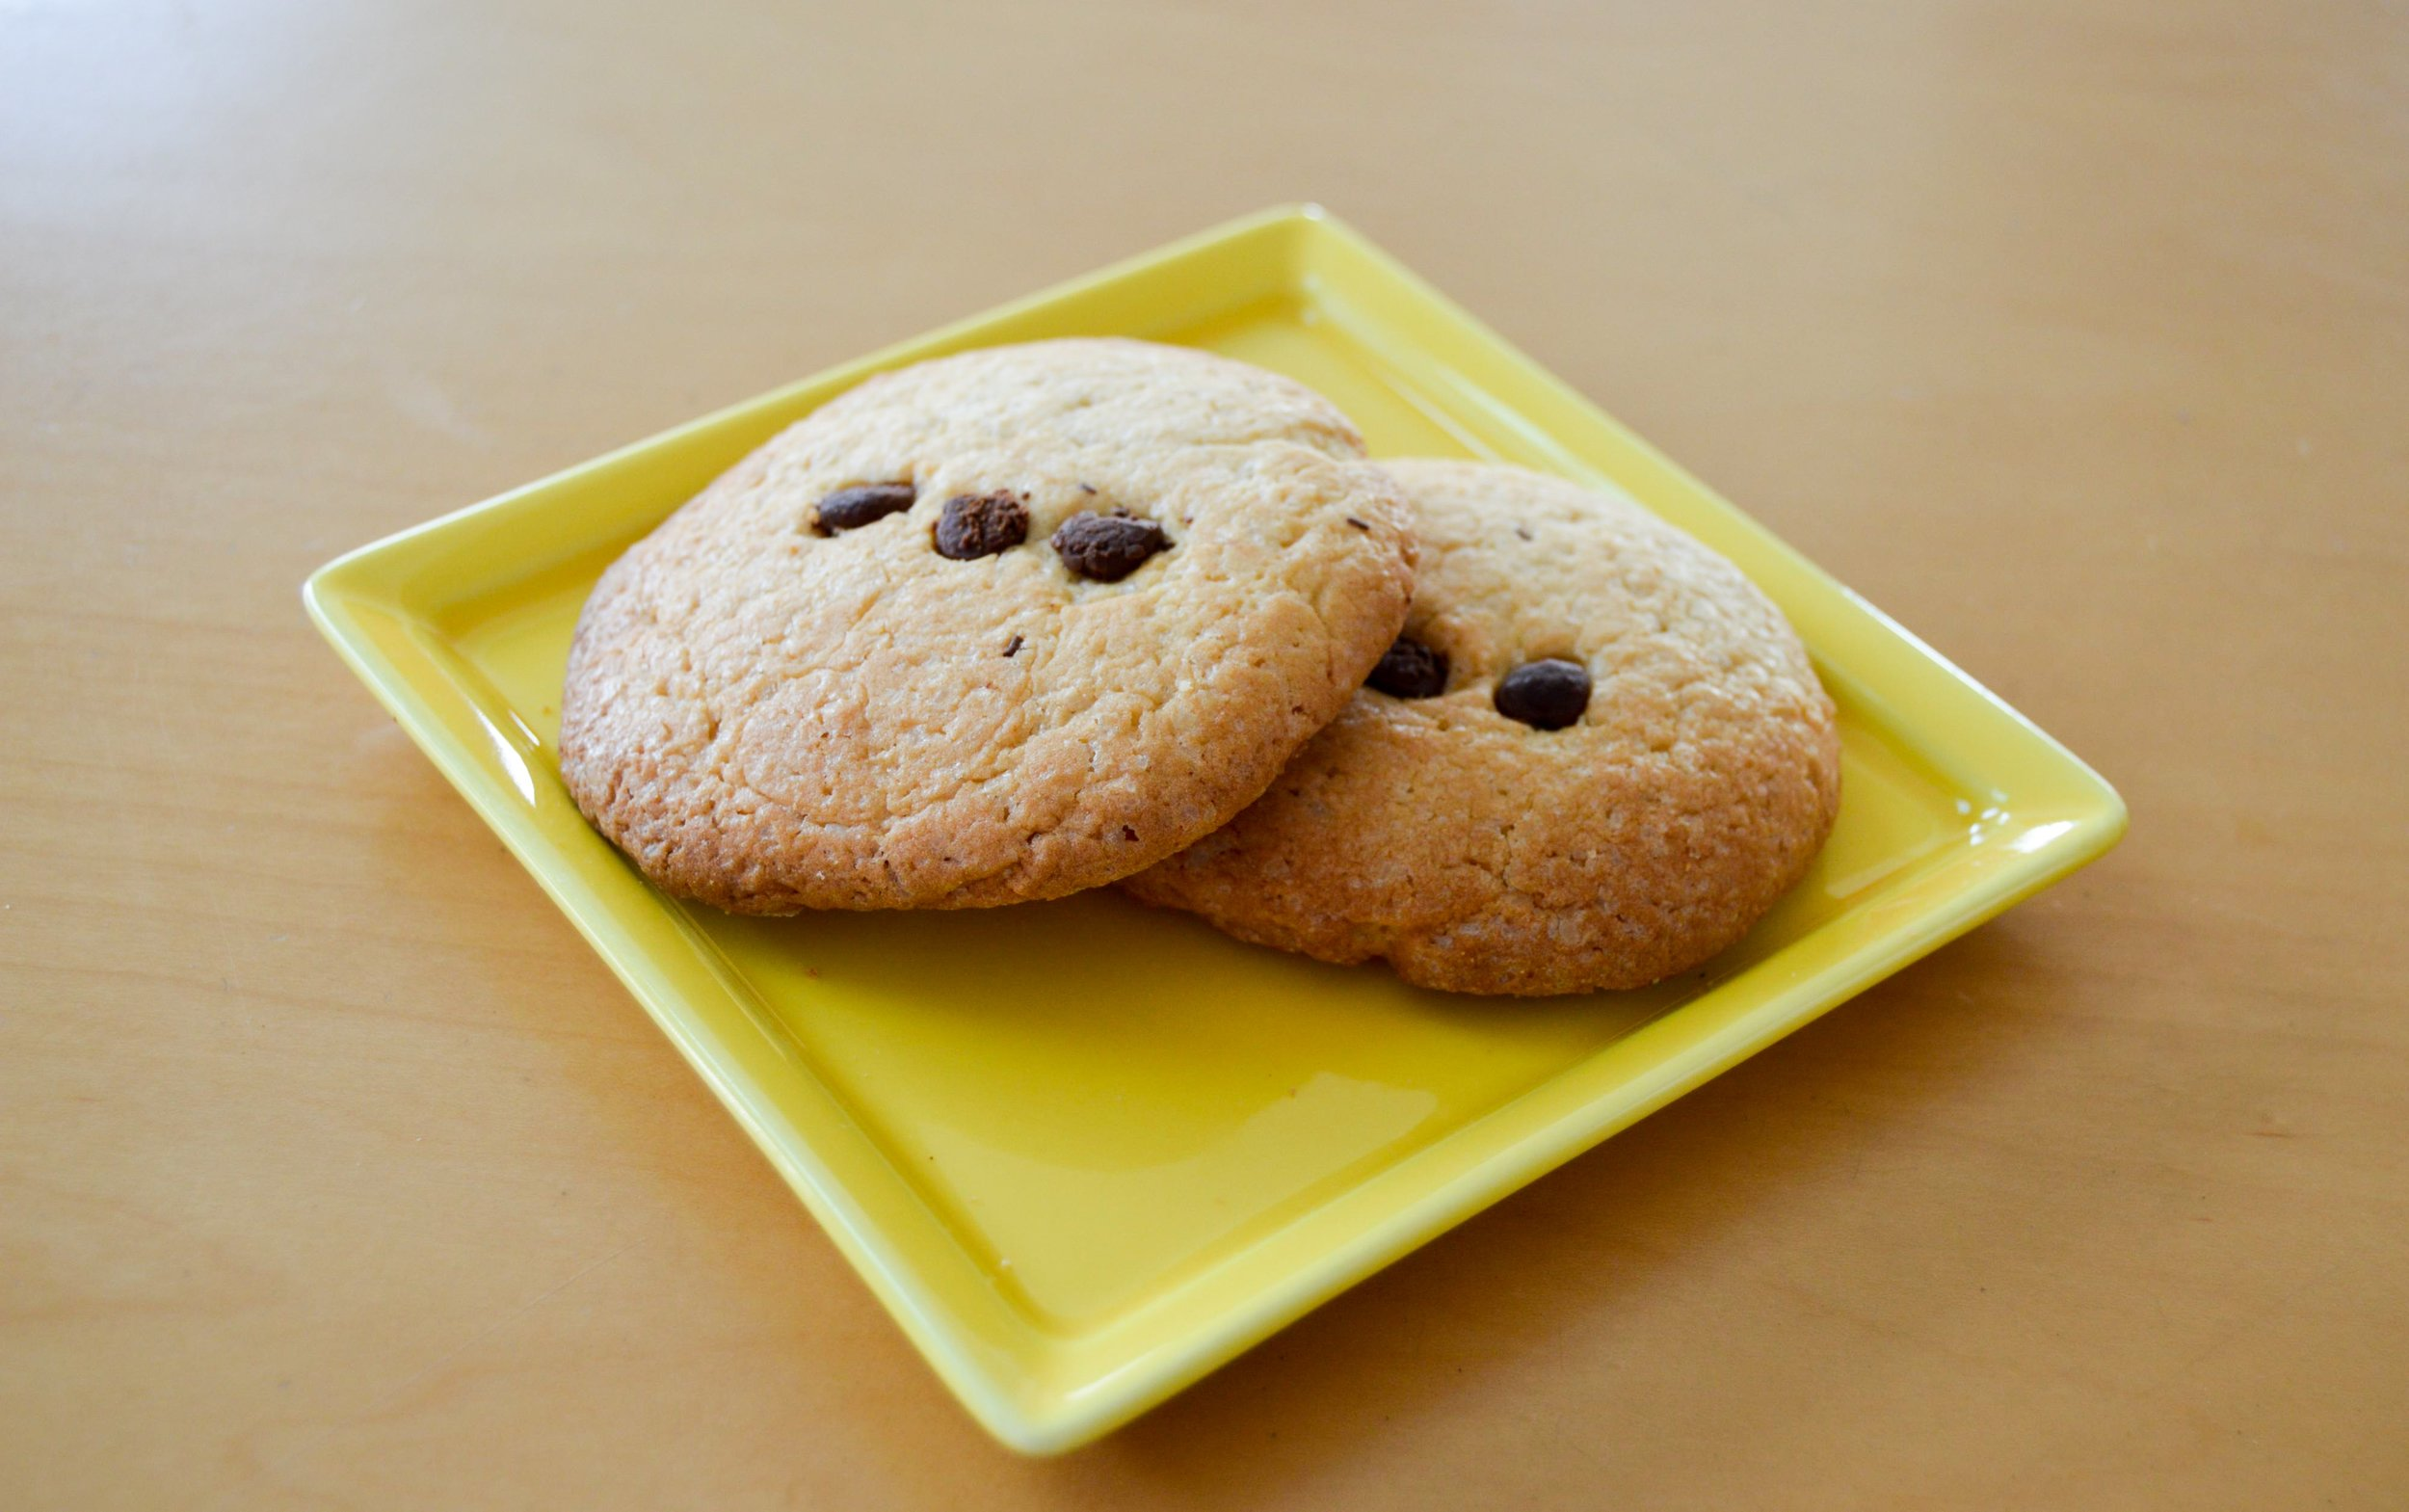 baked-baking-biscuits-298485.jpg